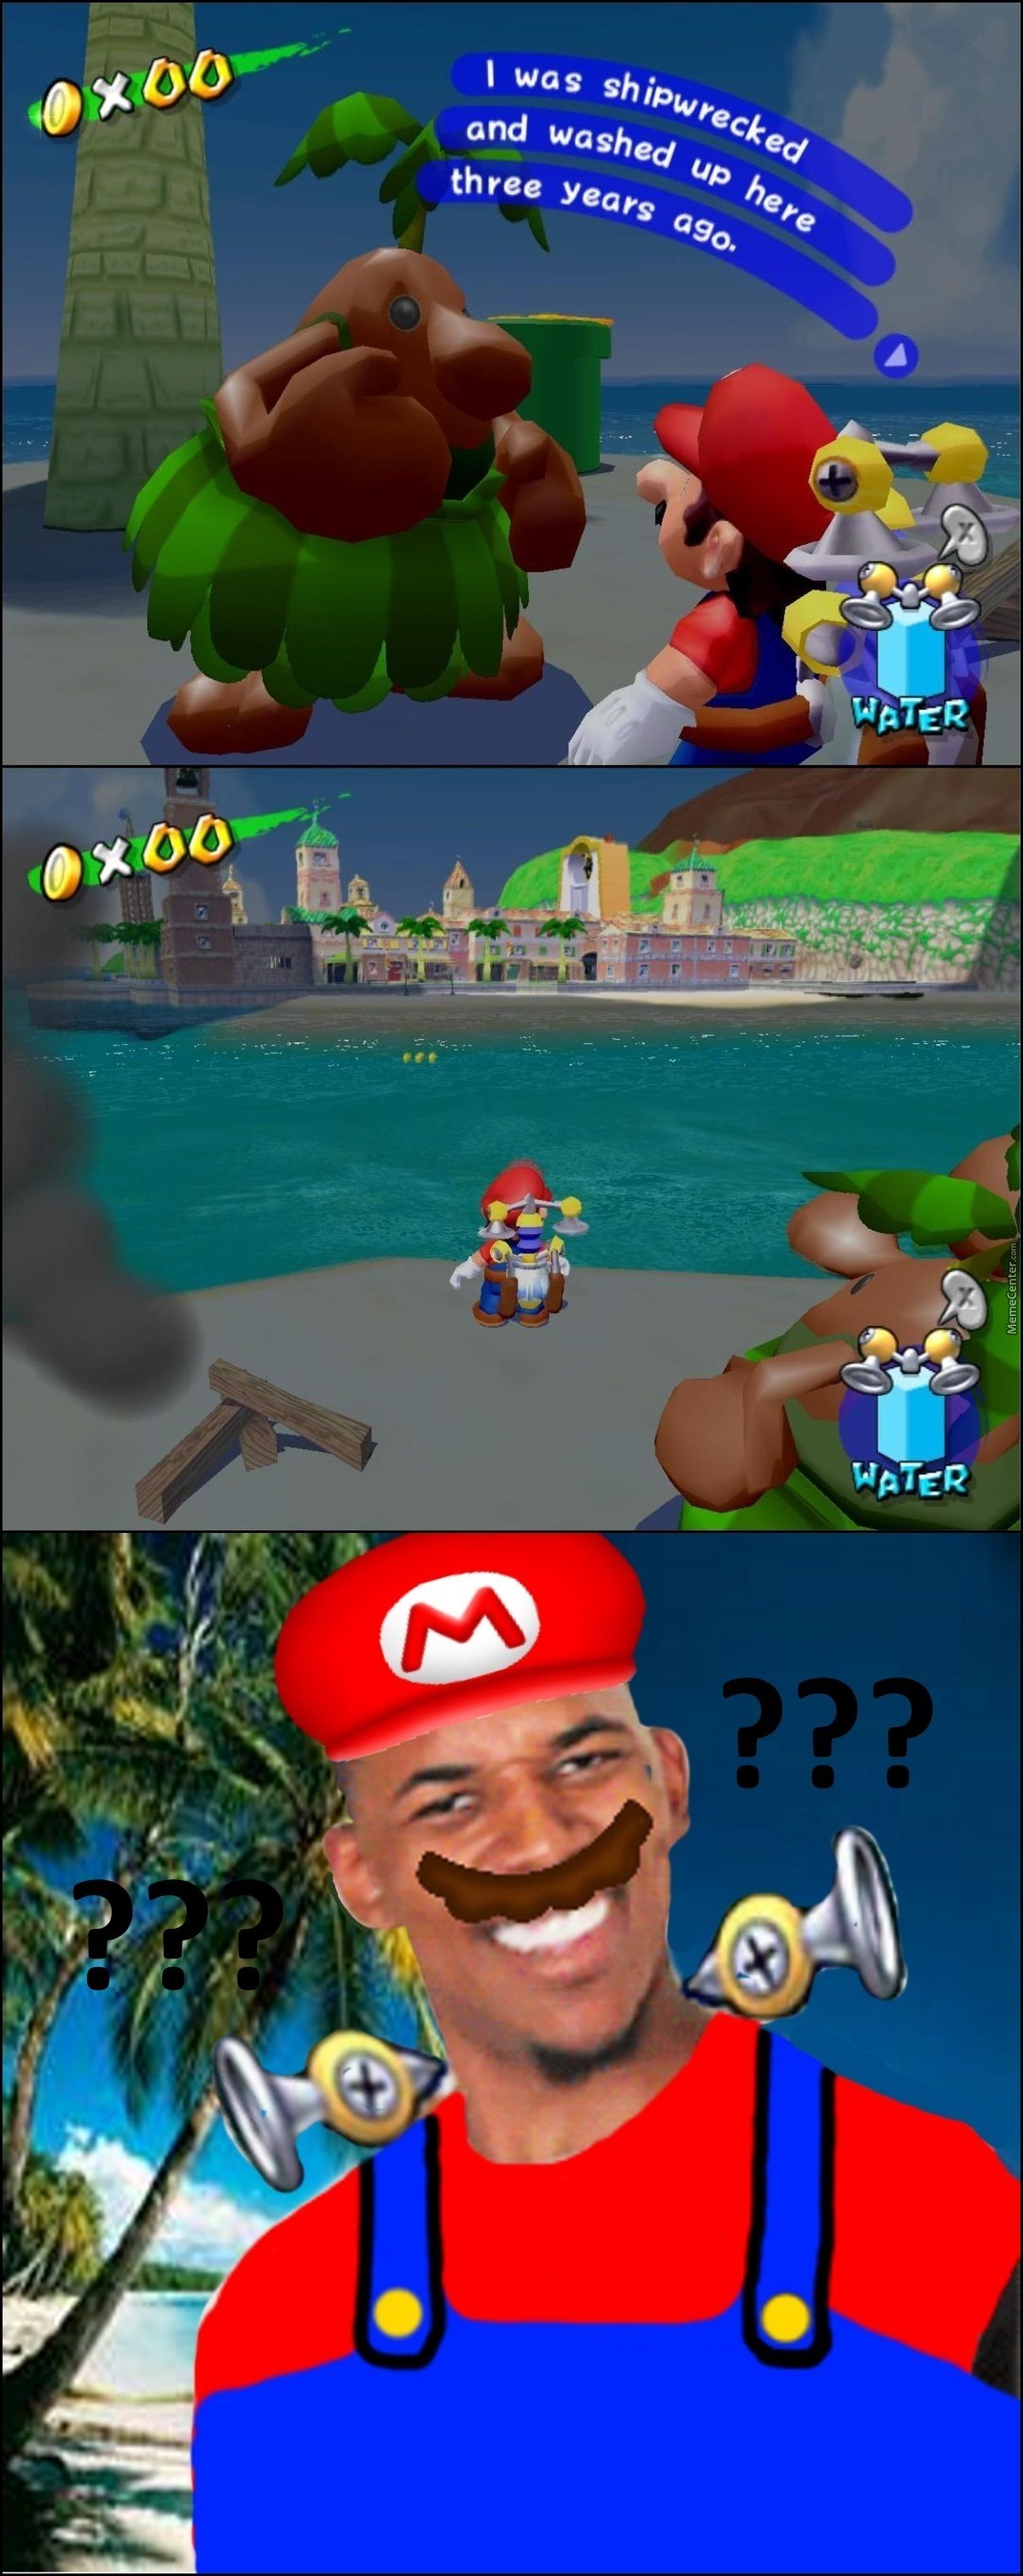 Cast Away - Super Mario Sunshine